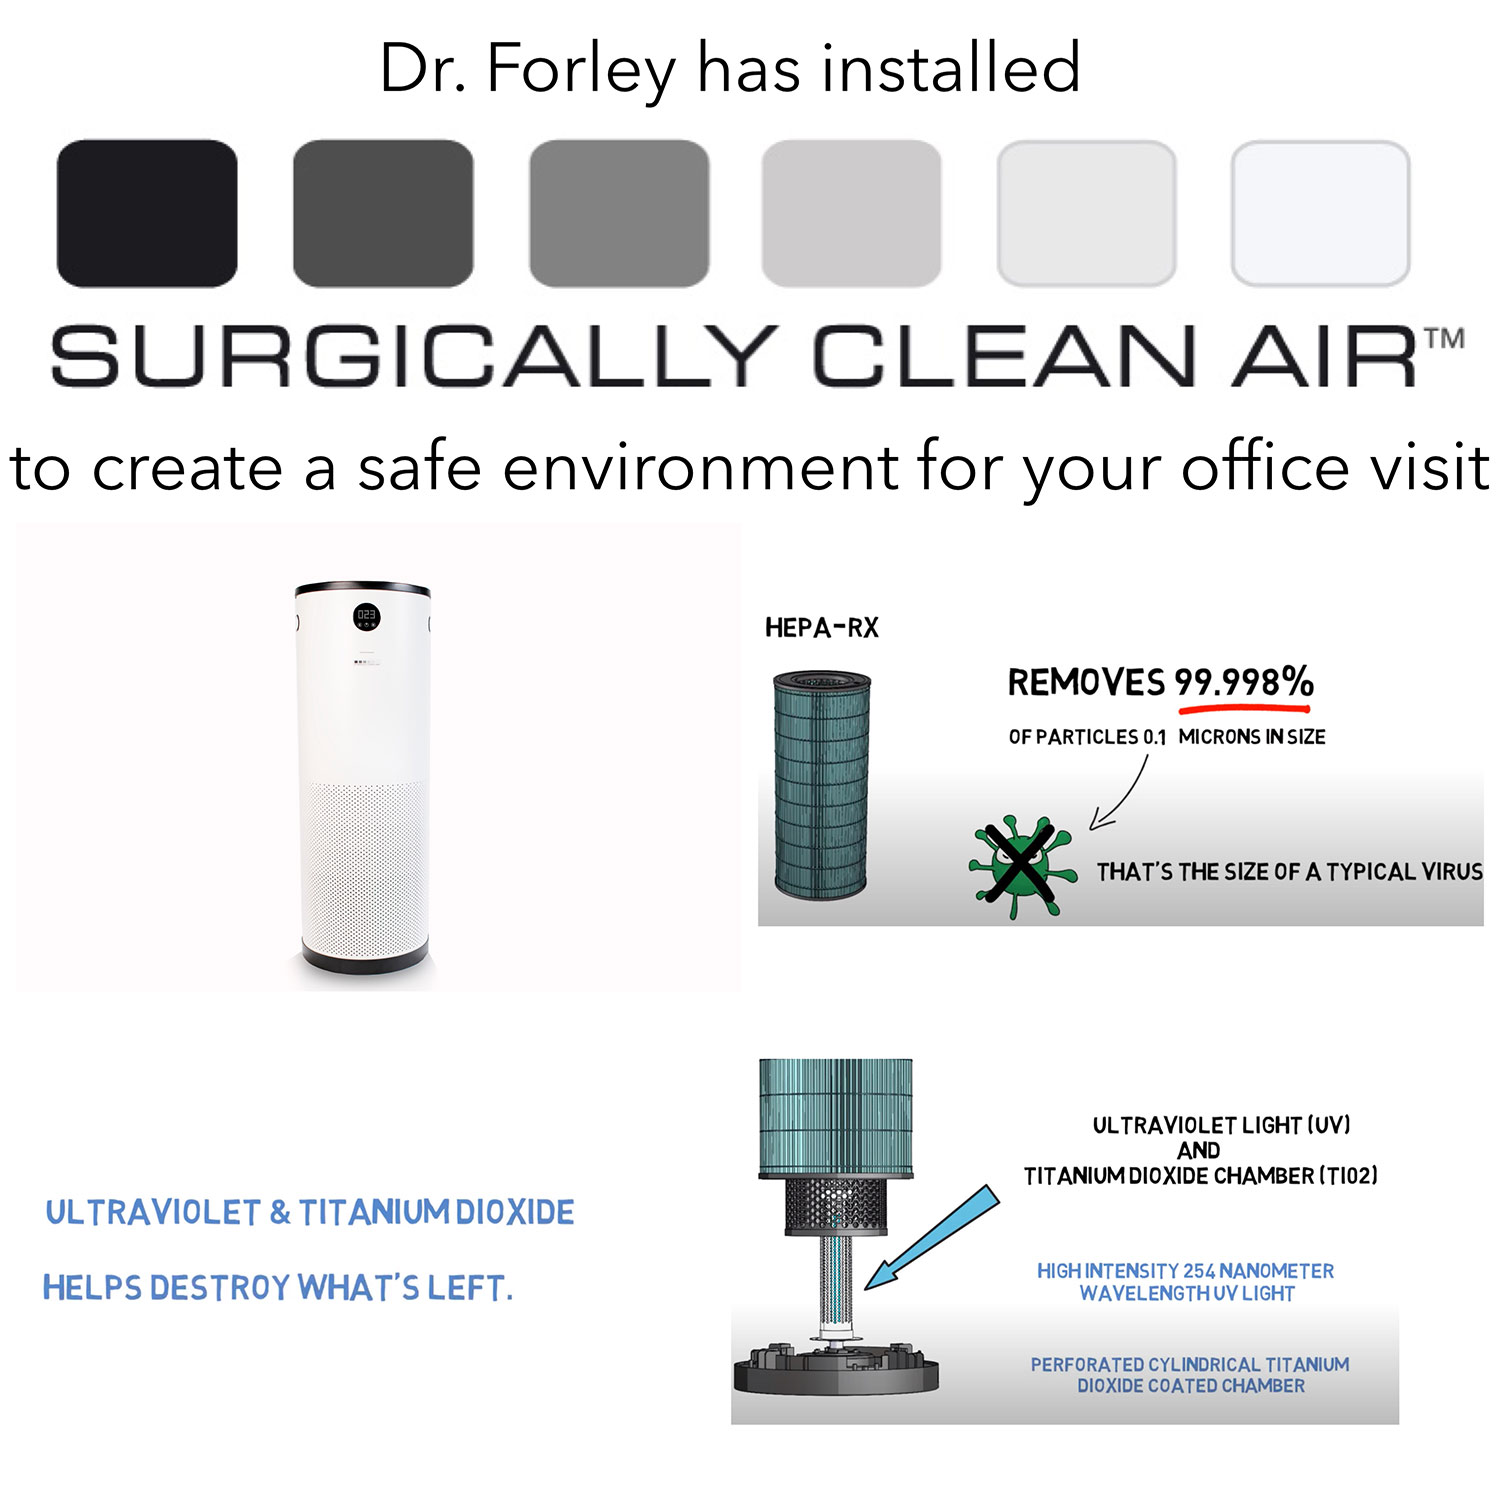 Dr. Forley has installed Surgically Clean AIR to create a safe environment for your office visit